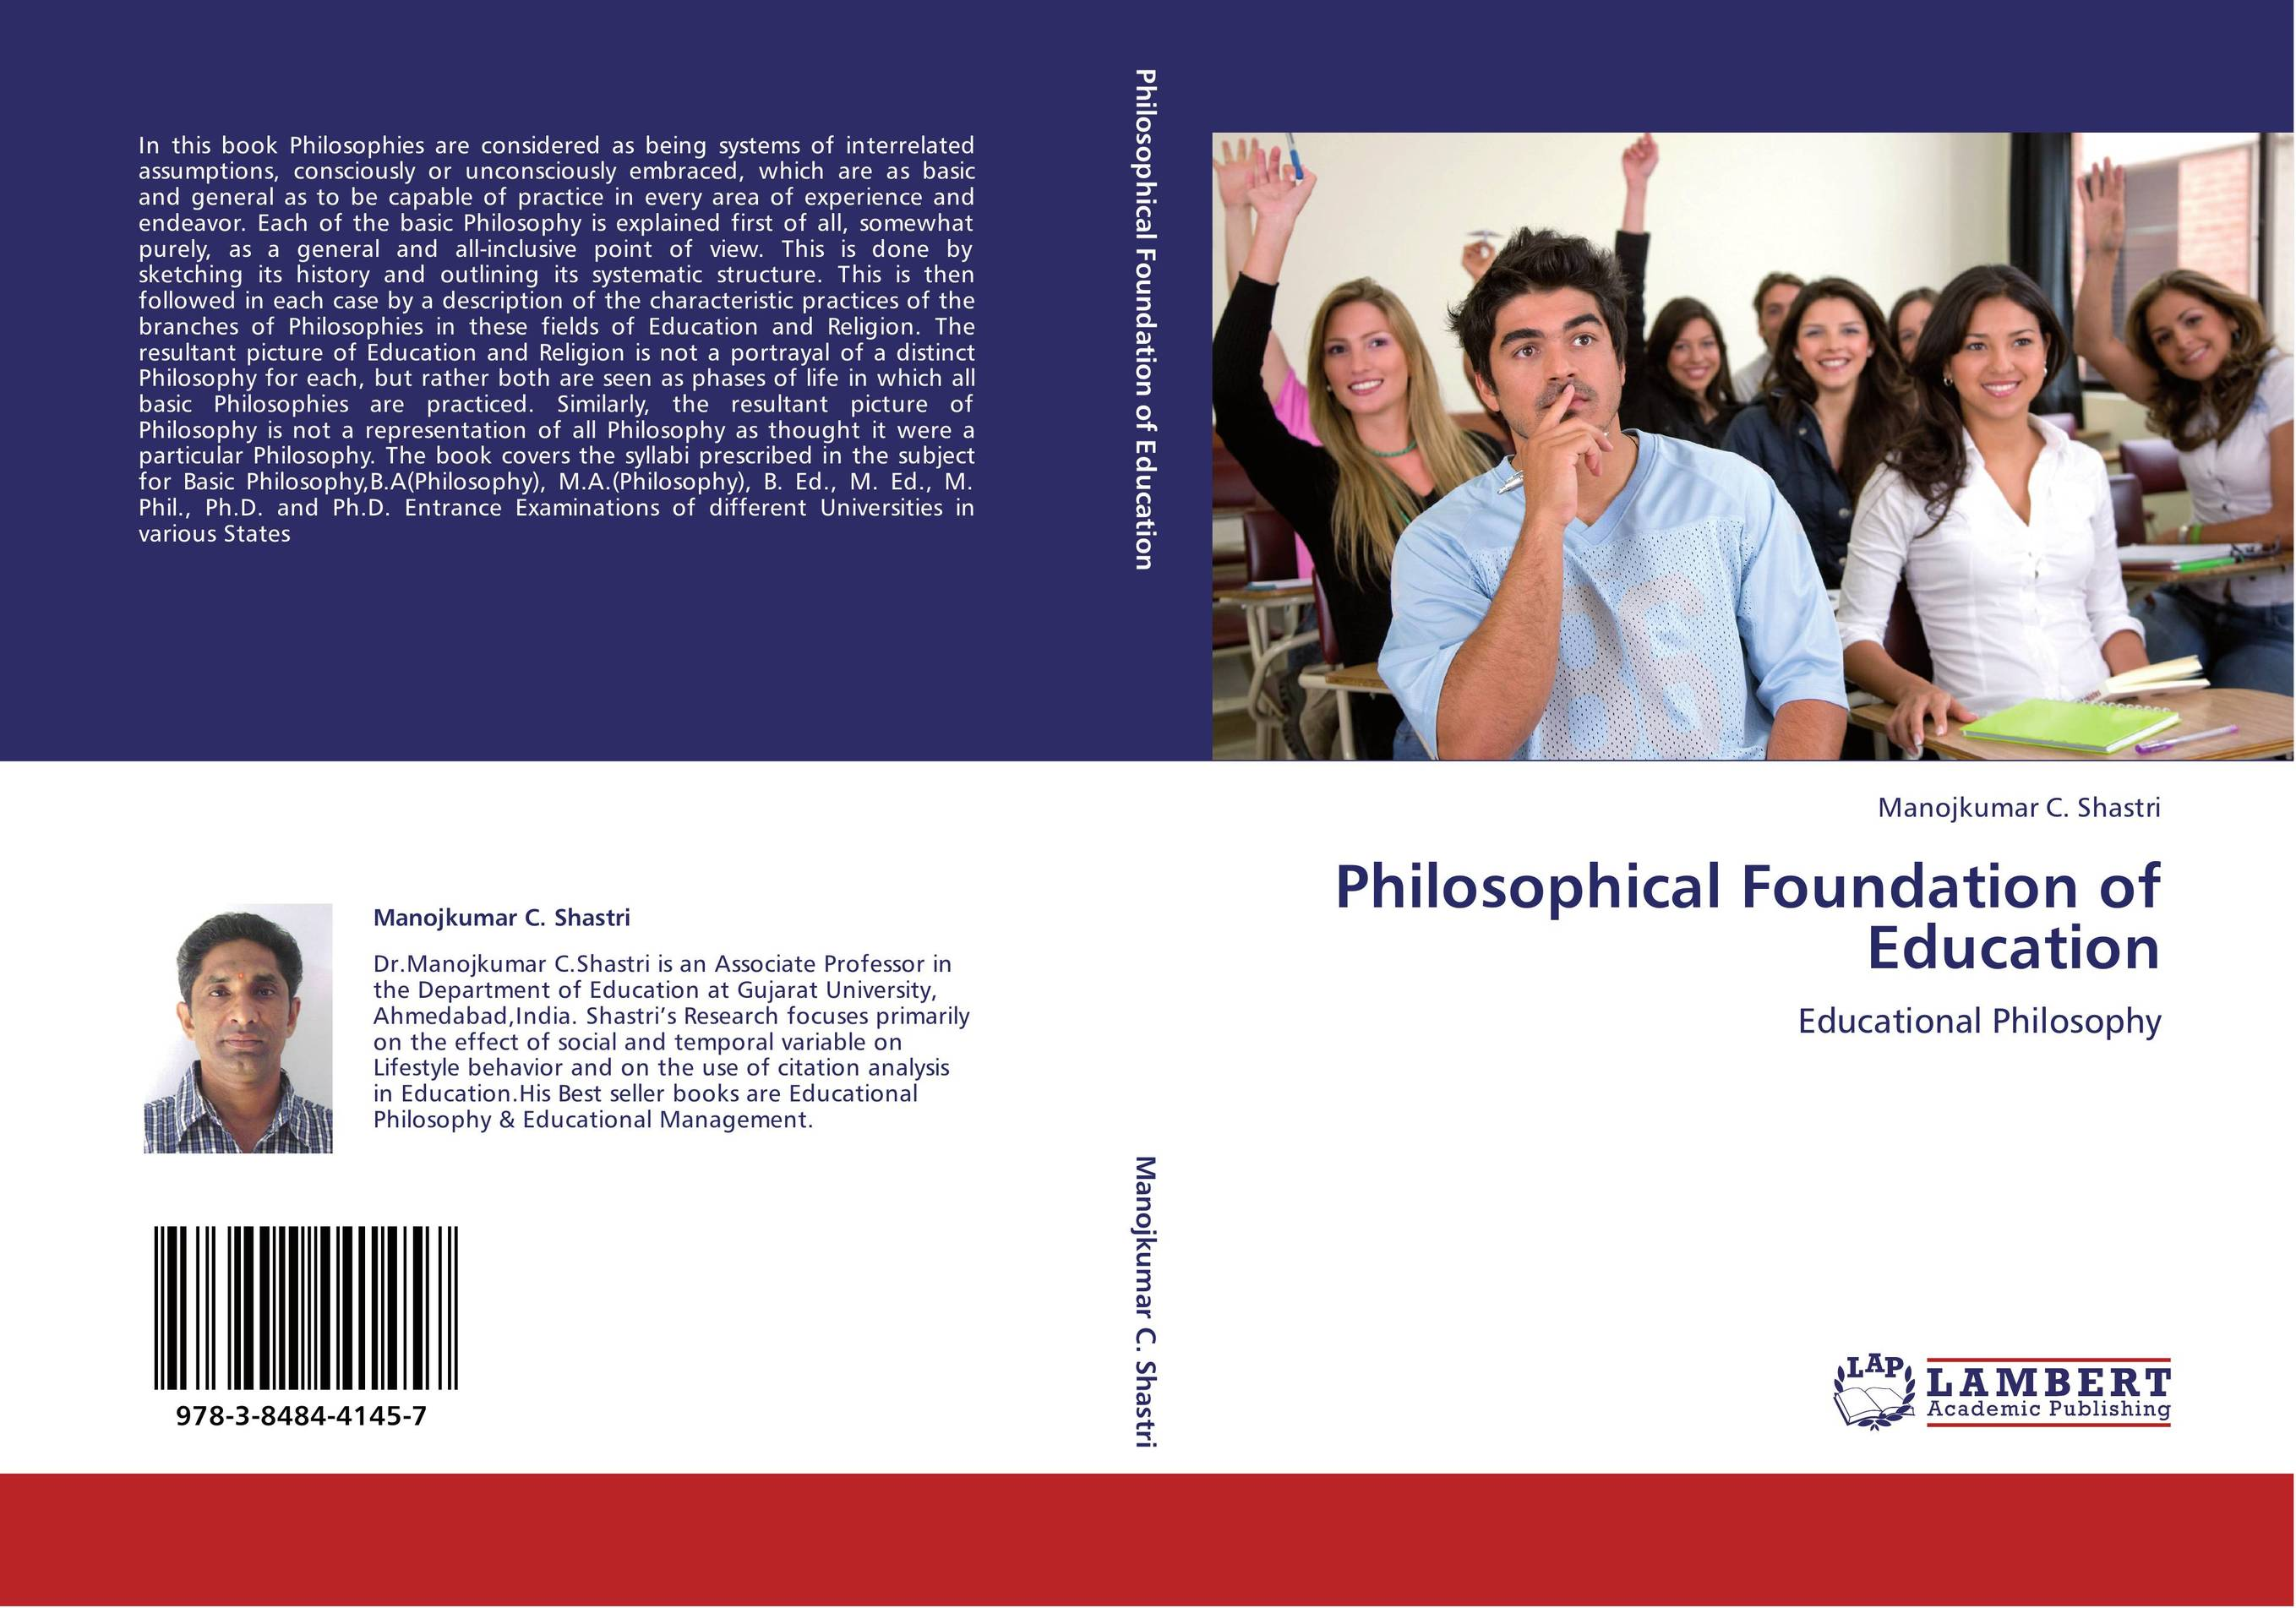 education philosophy We view education not only as a gateway to personal development, but also as a pathway for improving society our educational philosophy self-defined academic pursuits.